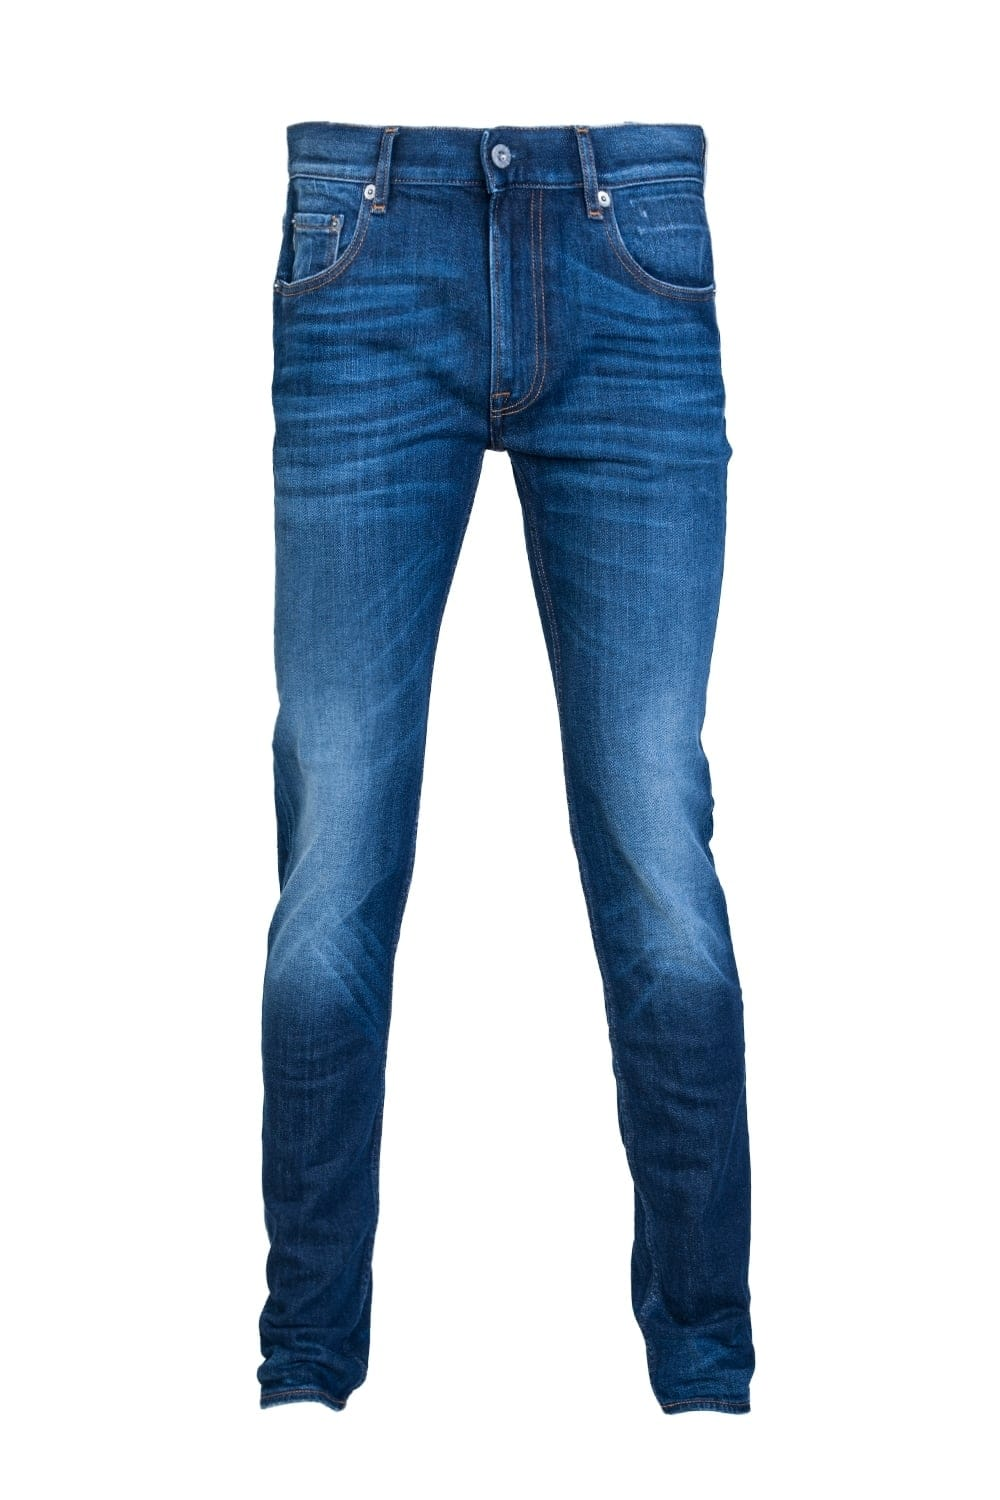 c8b421198e Stone Island Denim Jeans Skinny Fit 6615J2ZGA - Clothing from Sage ...